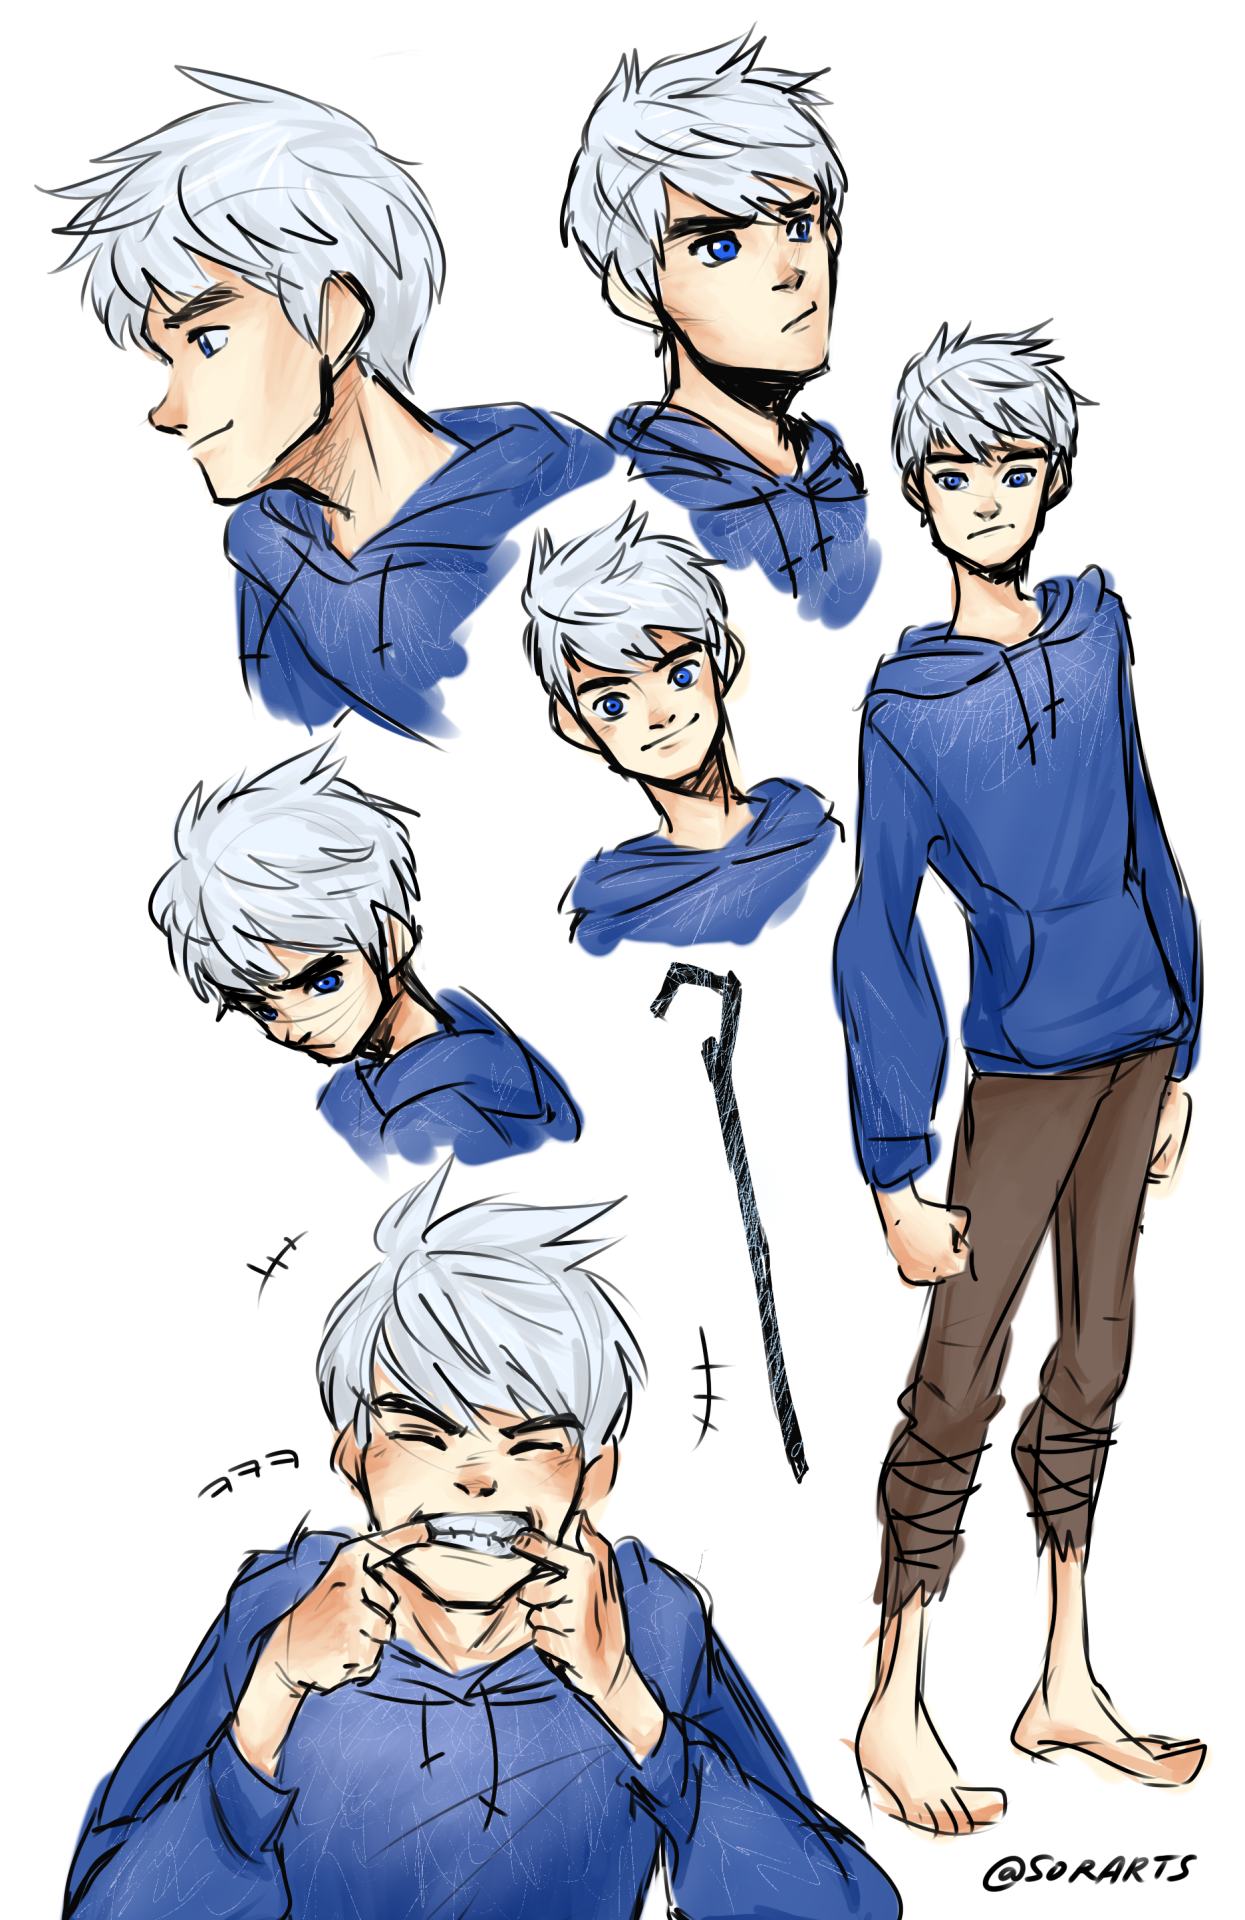 sorartspracticing how to draw jack (ノ・ェ・)ノ Jake frost